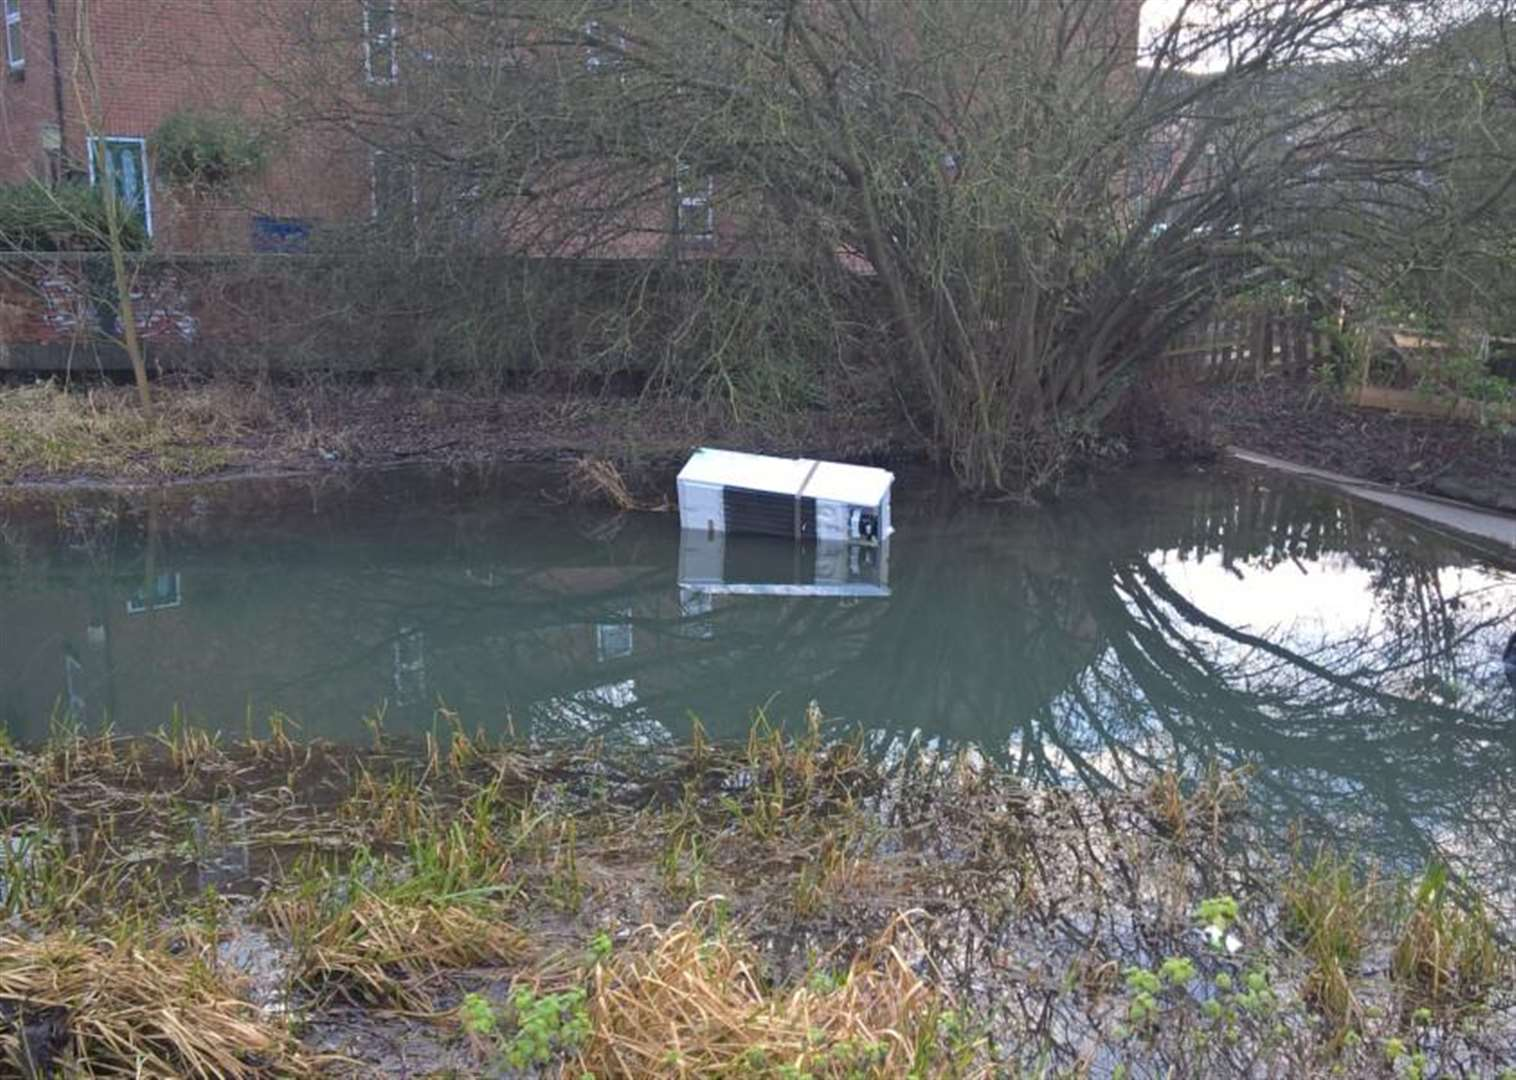 Call for witnesses after Grantham flytippers dump fridge freezer from bridge into River Witham